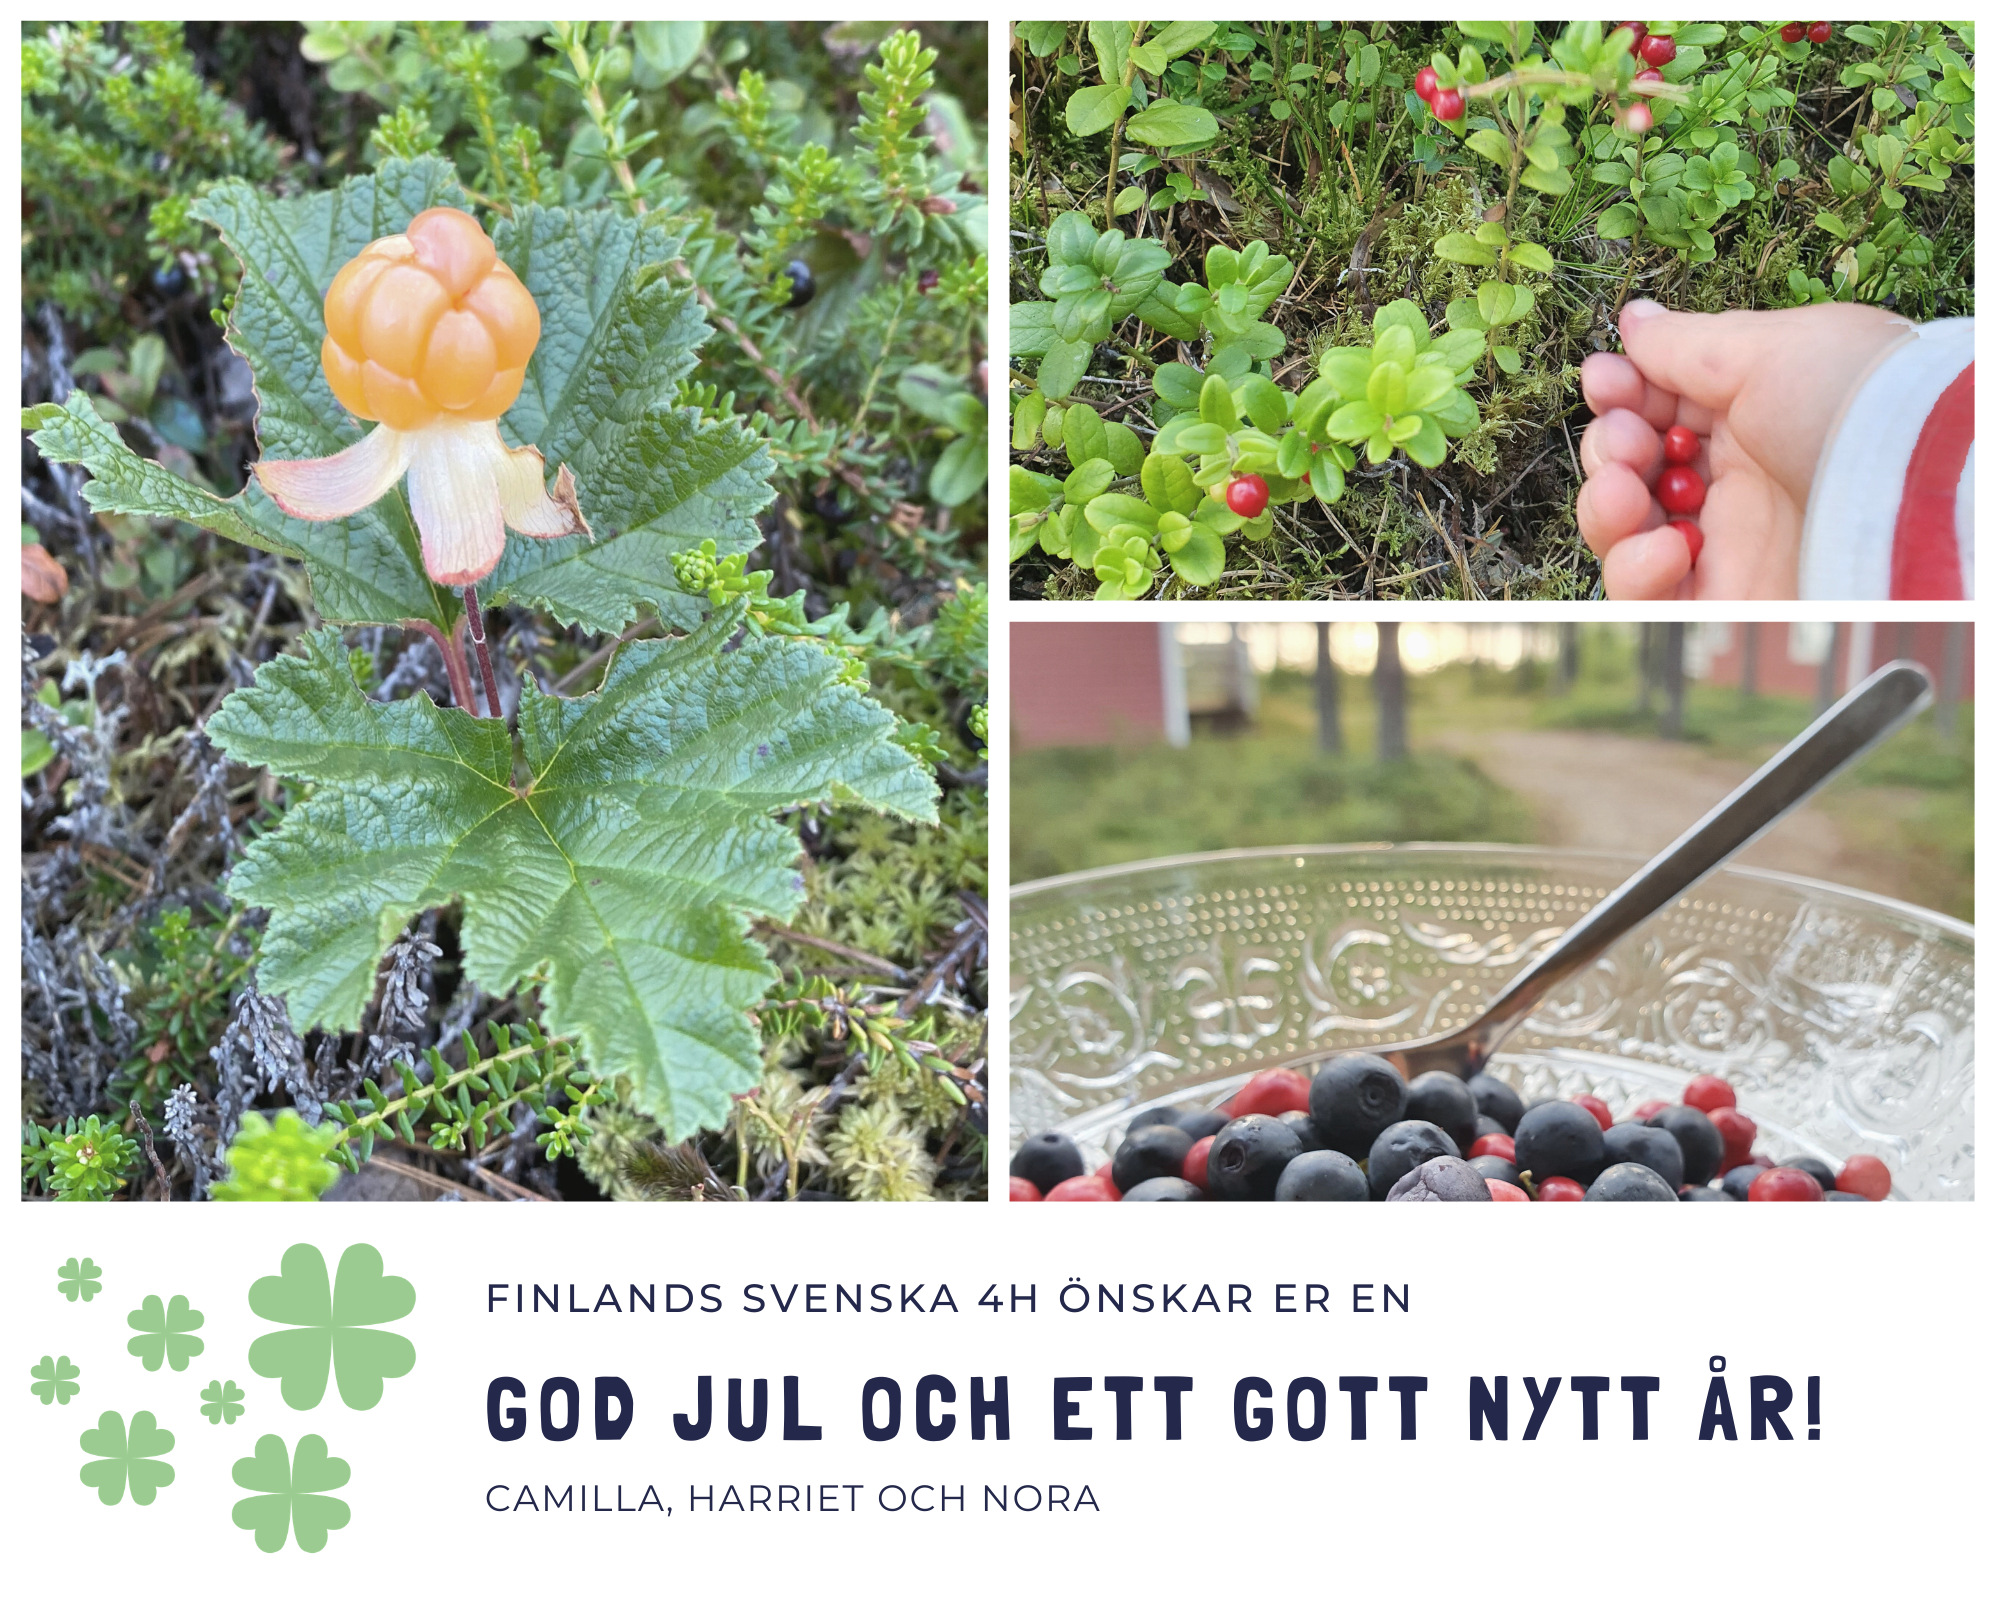 God Jul! featured image